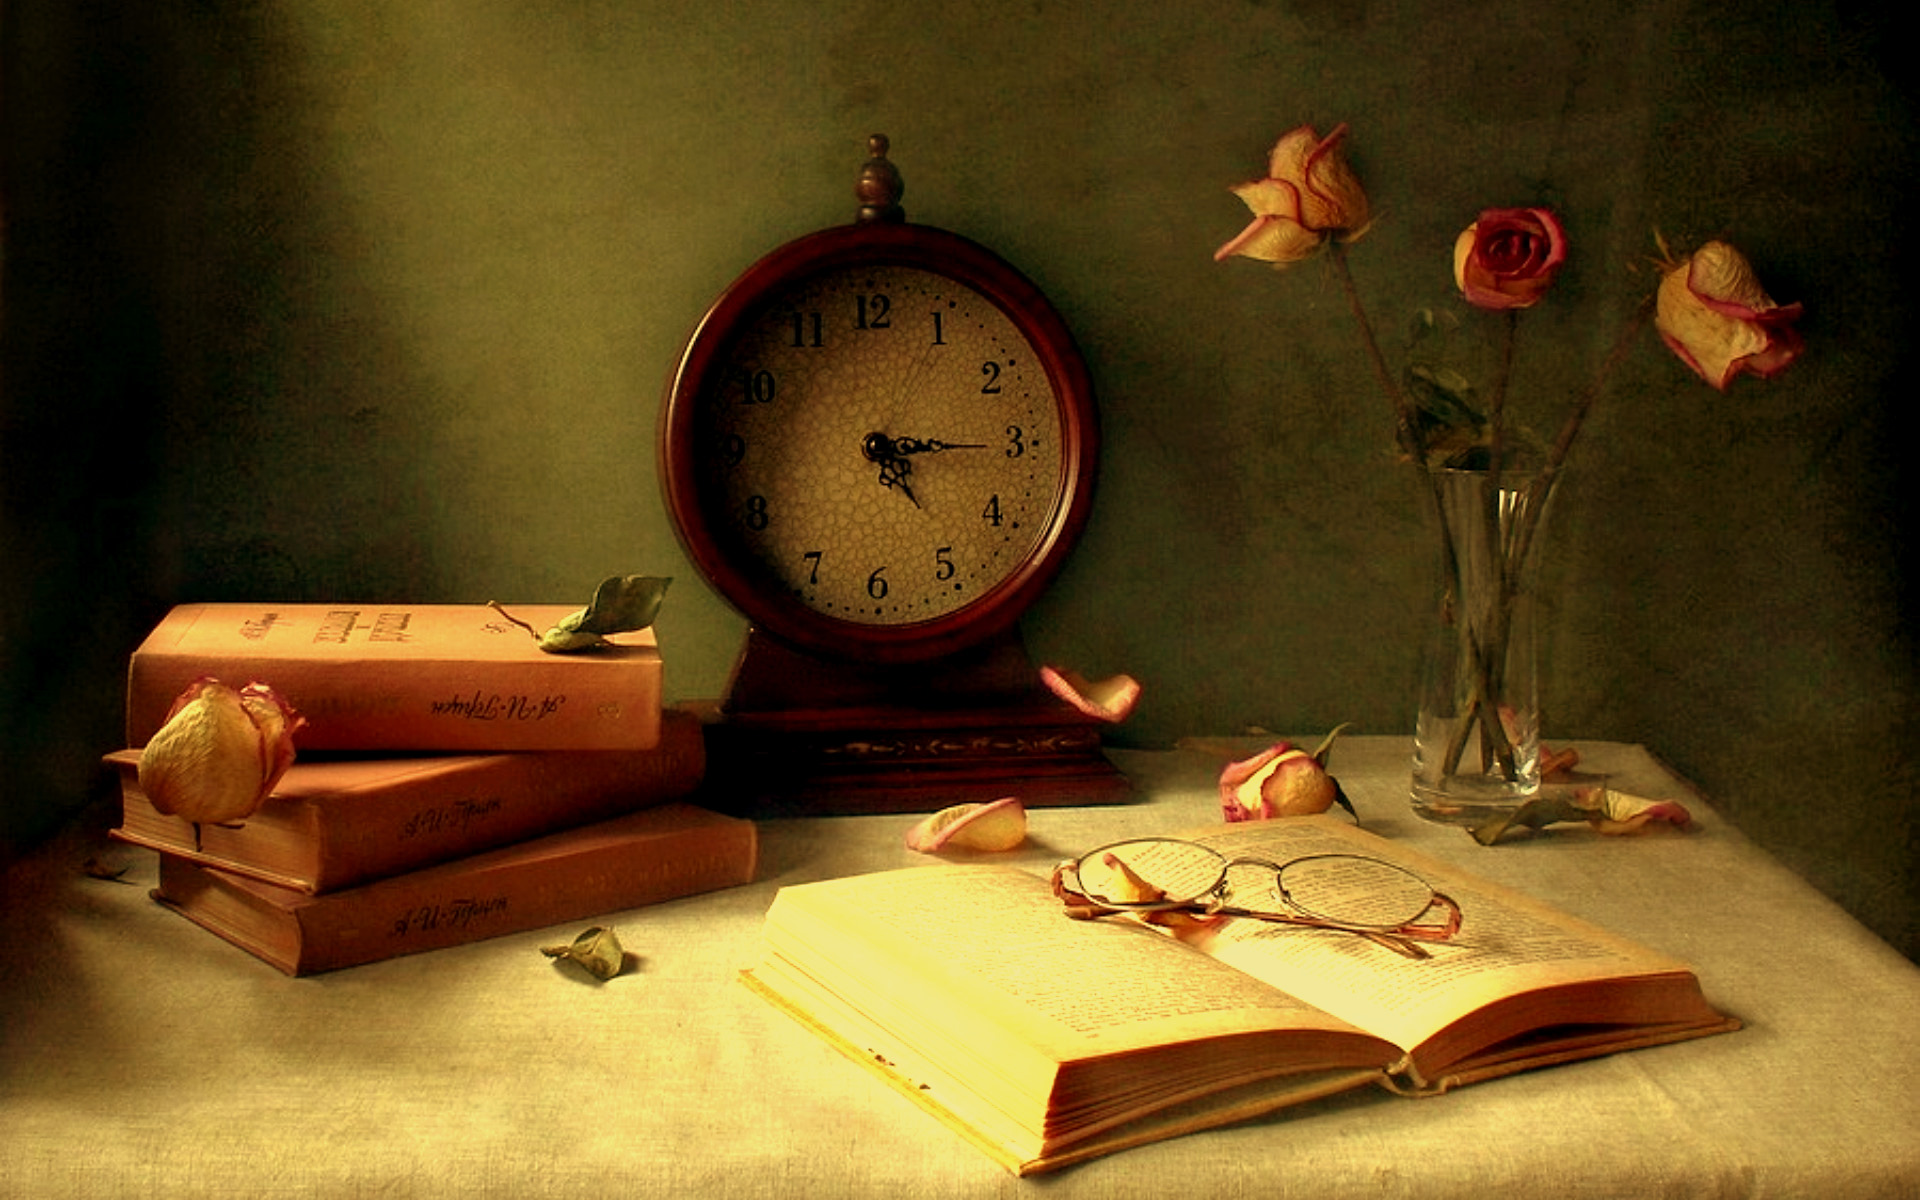 clock-on-the-table-wallpaper-background